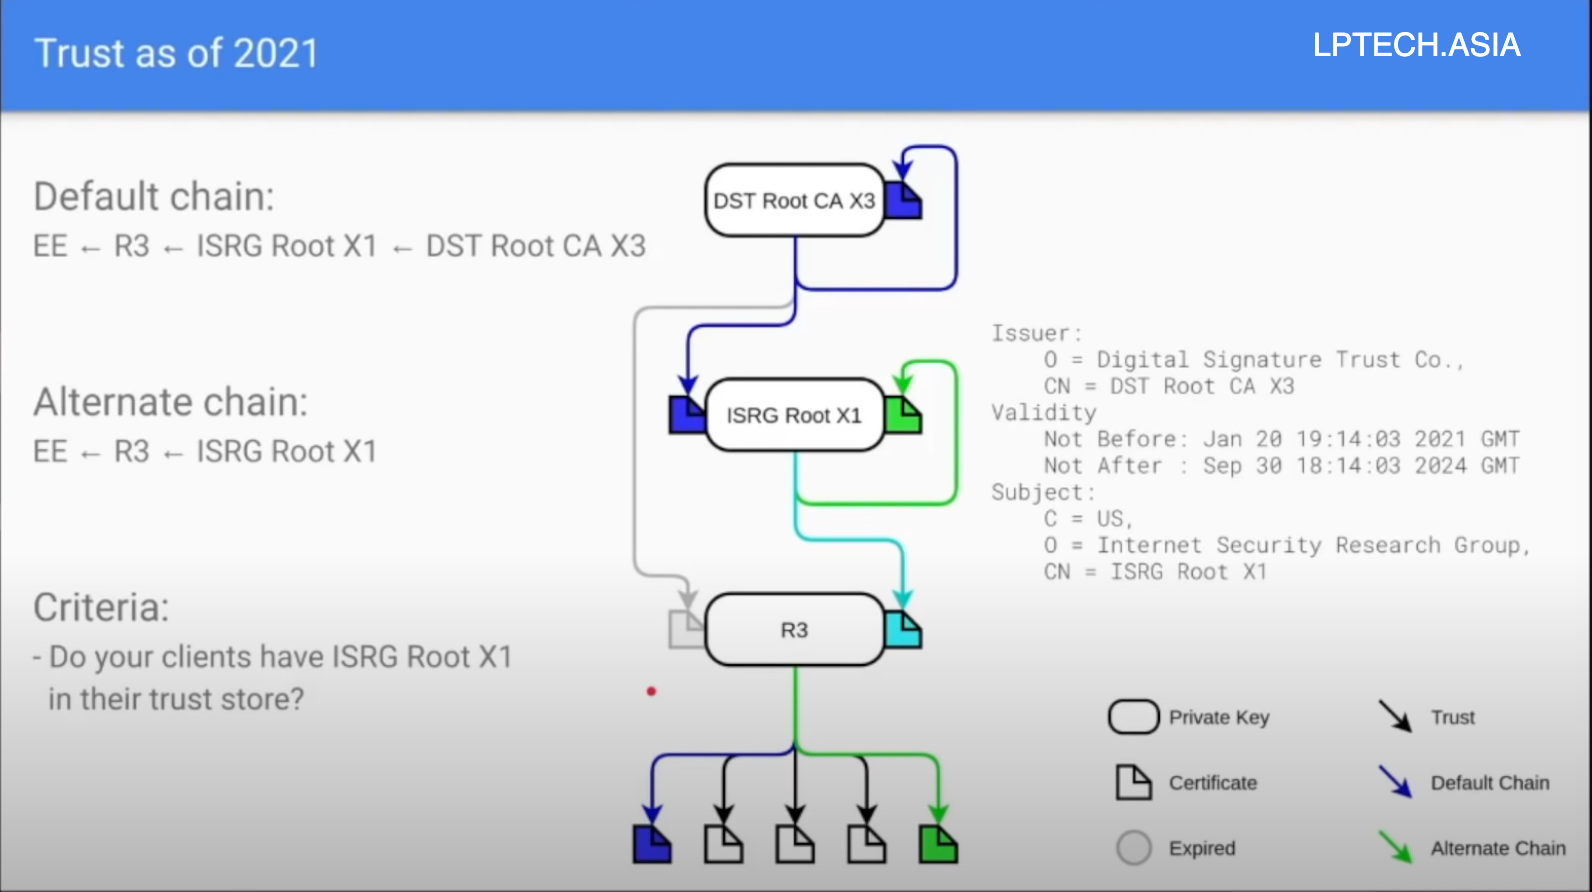 DST Root CA X3 - 2021